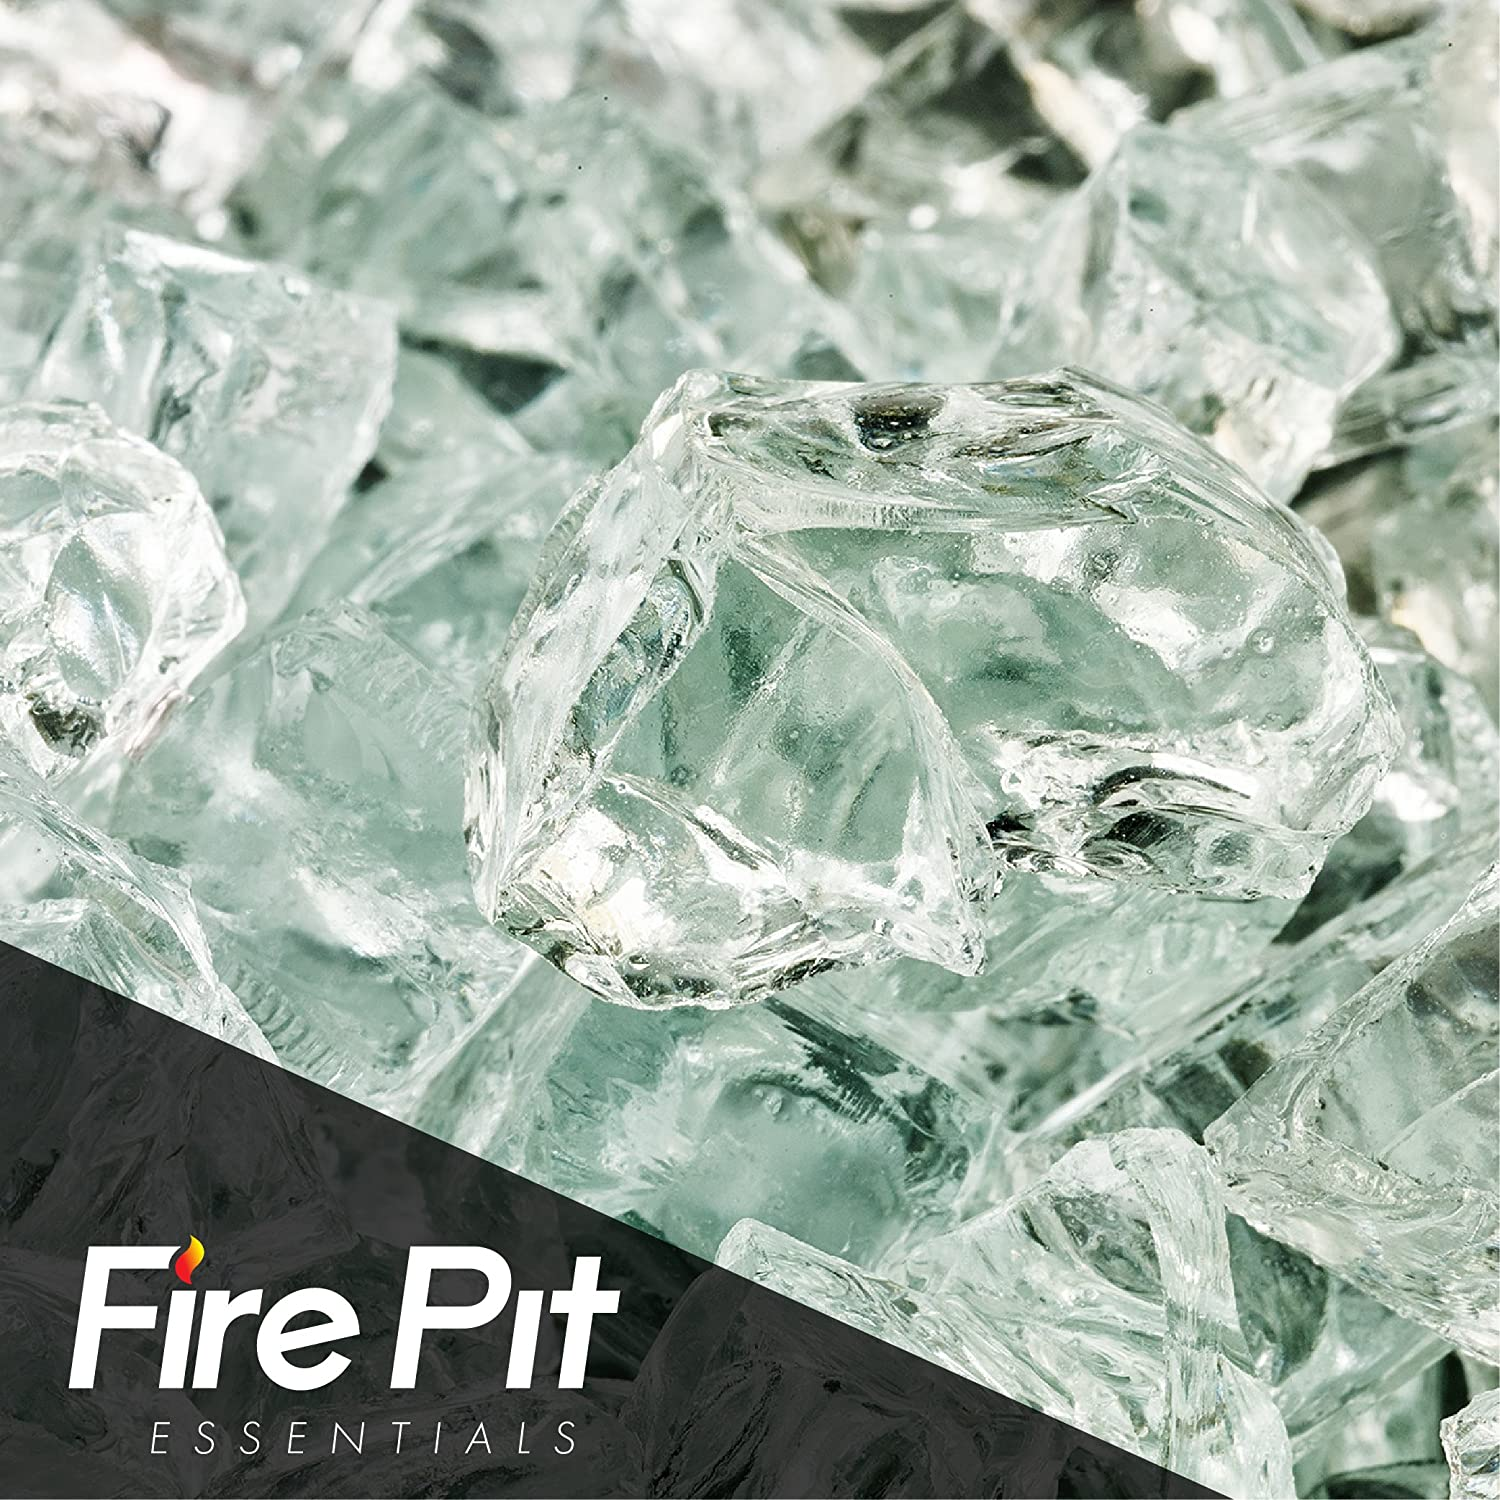 Arctic Ice Clear Fire Glass 1/2 Firepit Glass Premium 10 Pound Great for Fire Pit Fireglass or Fireplace Glass Fire Pit Essentials HI-05